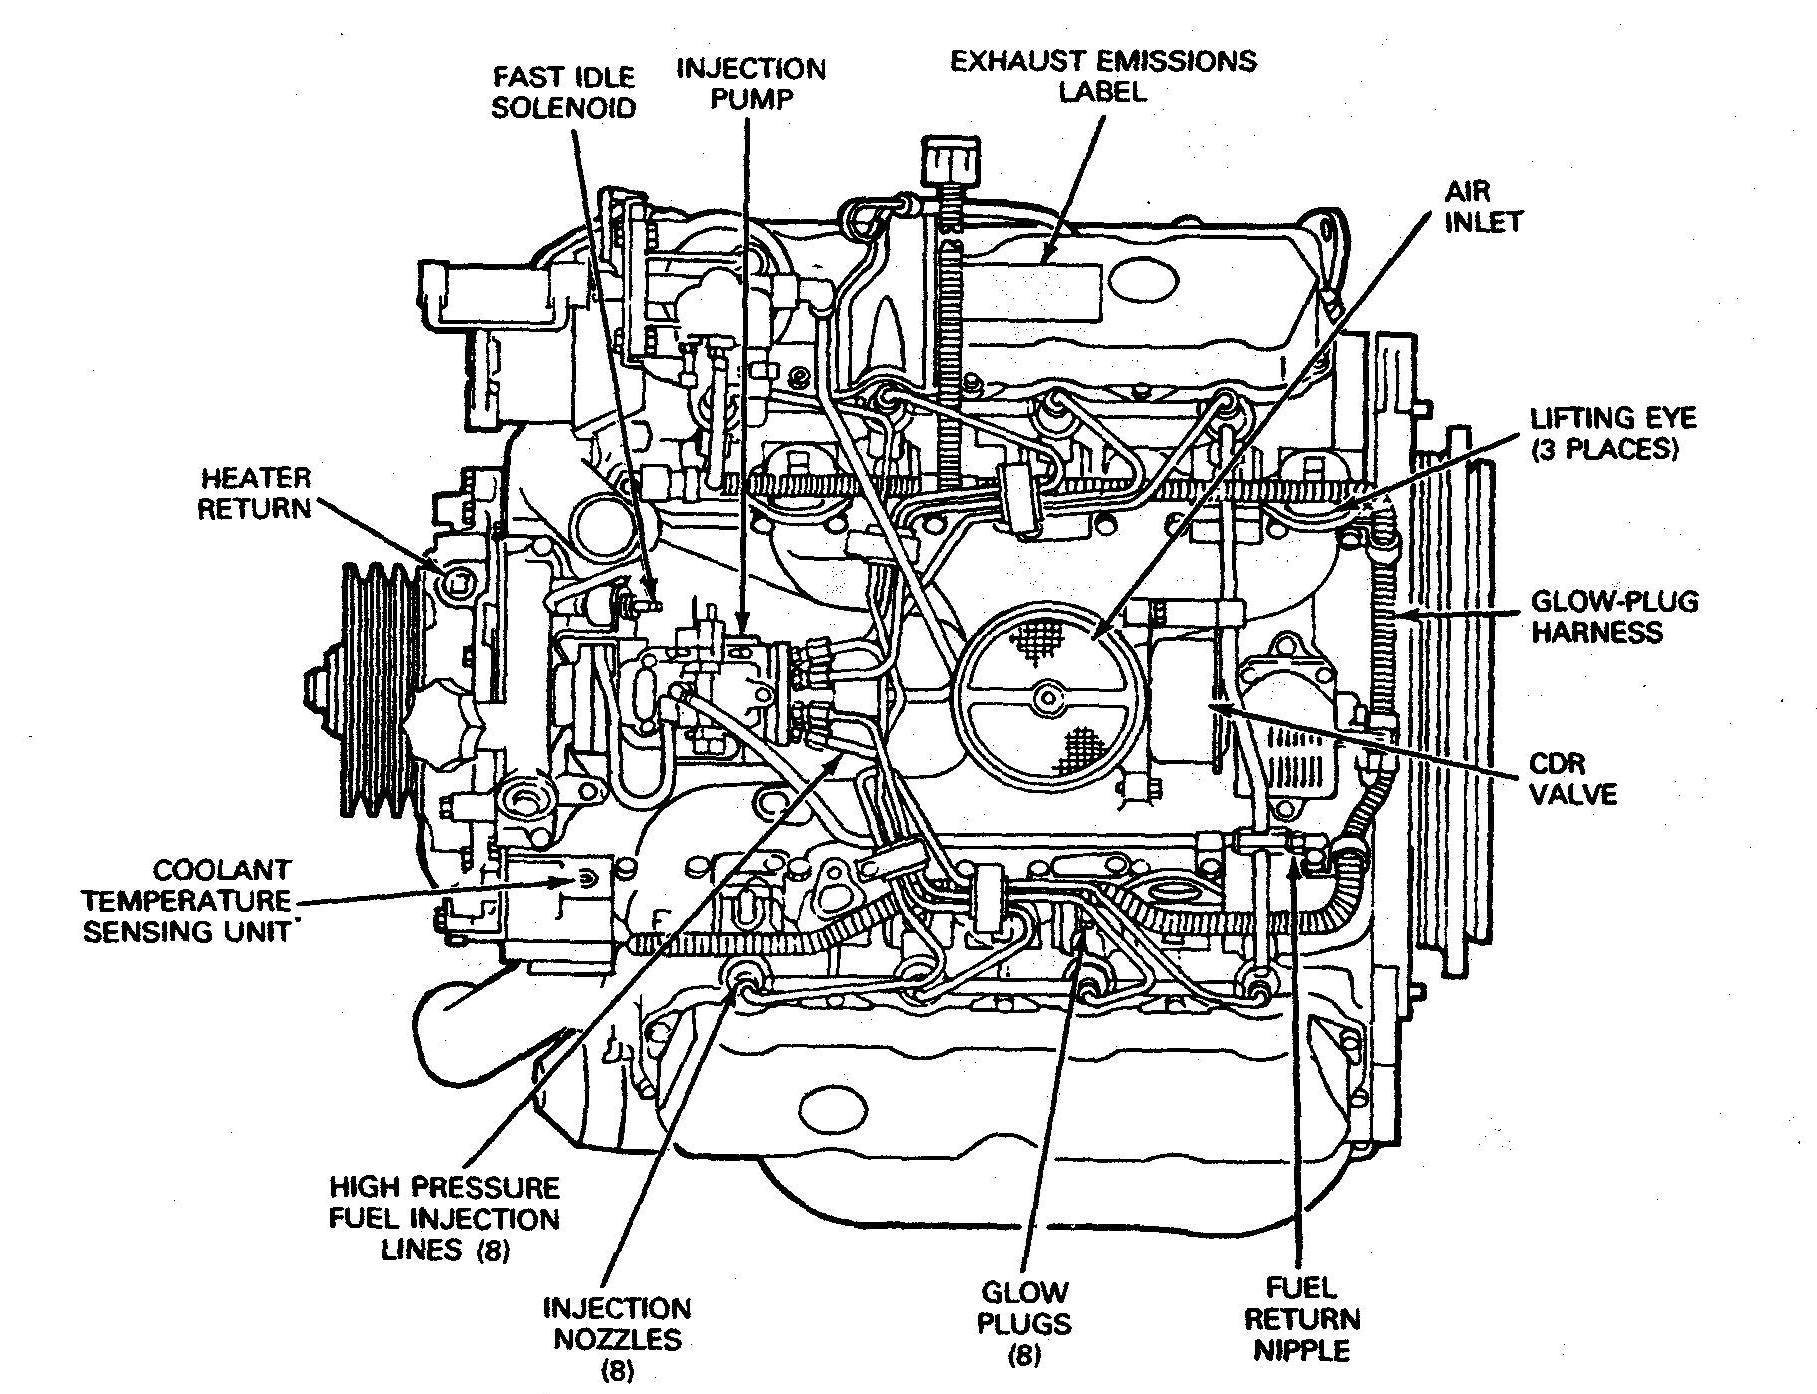 old engine diagram automotive block diagram u2022 rh carwiringdiagram today Engine Diagram with Labels Basic Engine Diagram